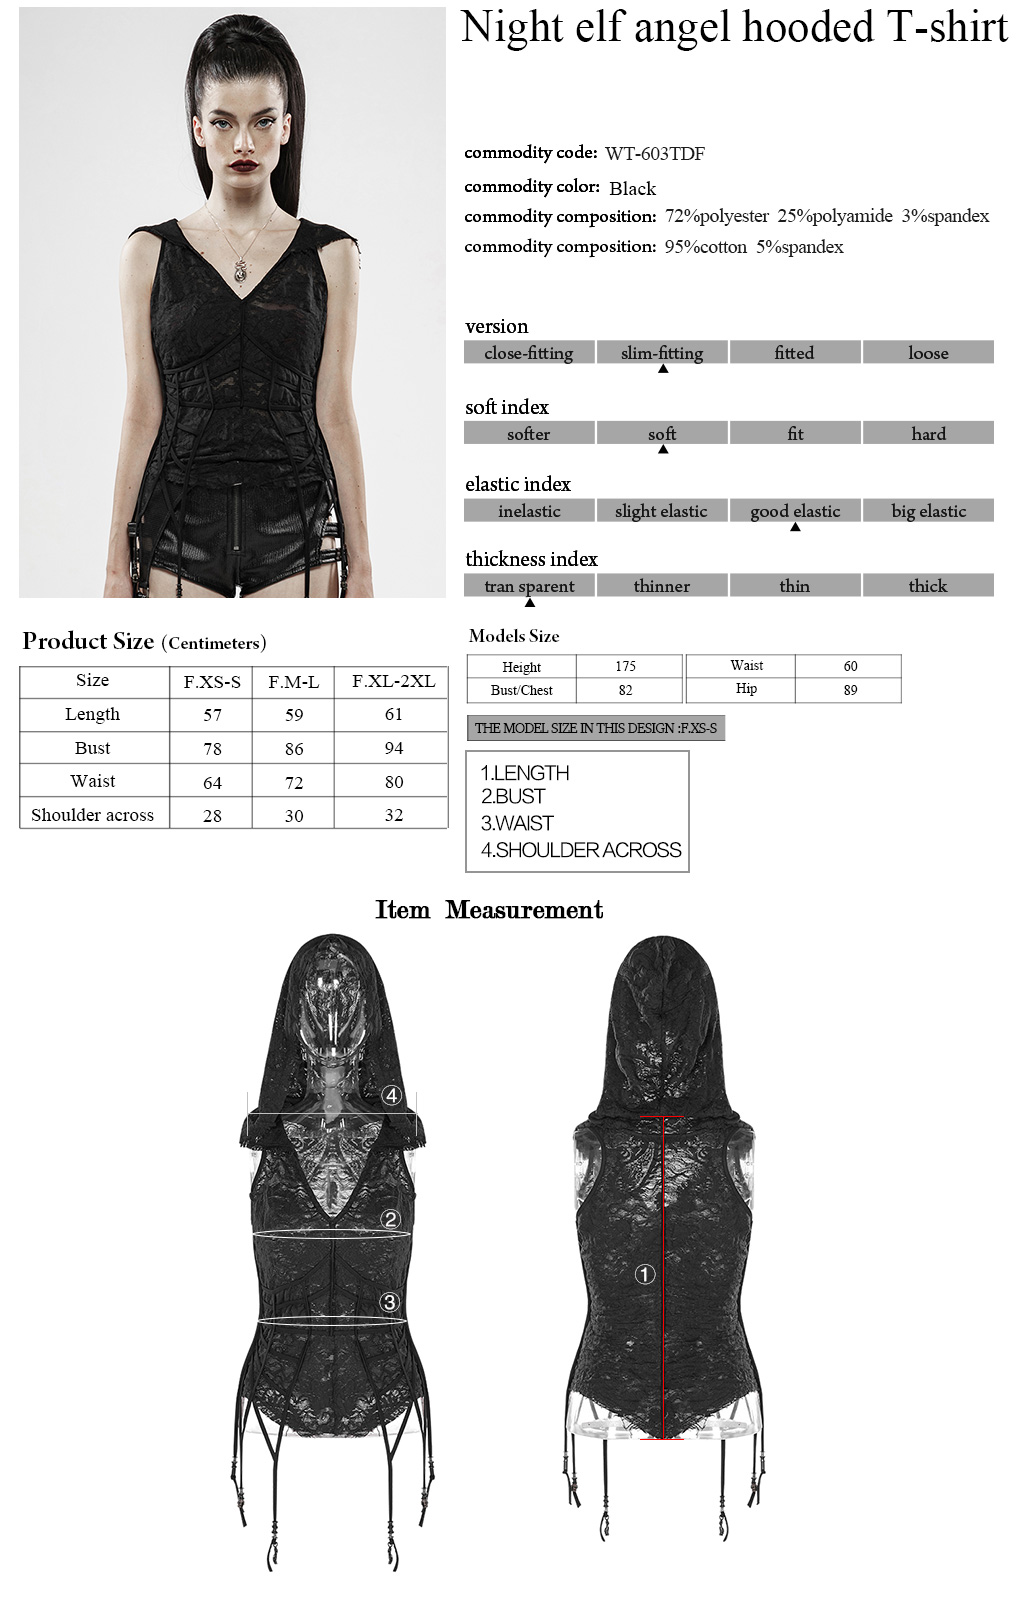 Punk Rave Gothic casual women's black sleeveless hooded v-neckline top WT-603